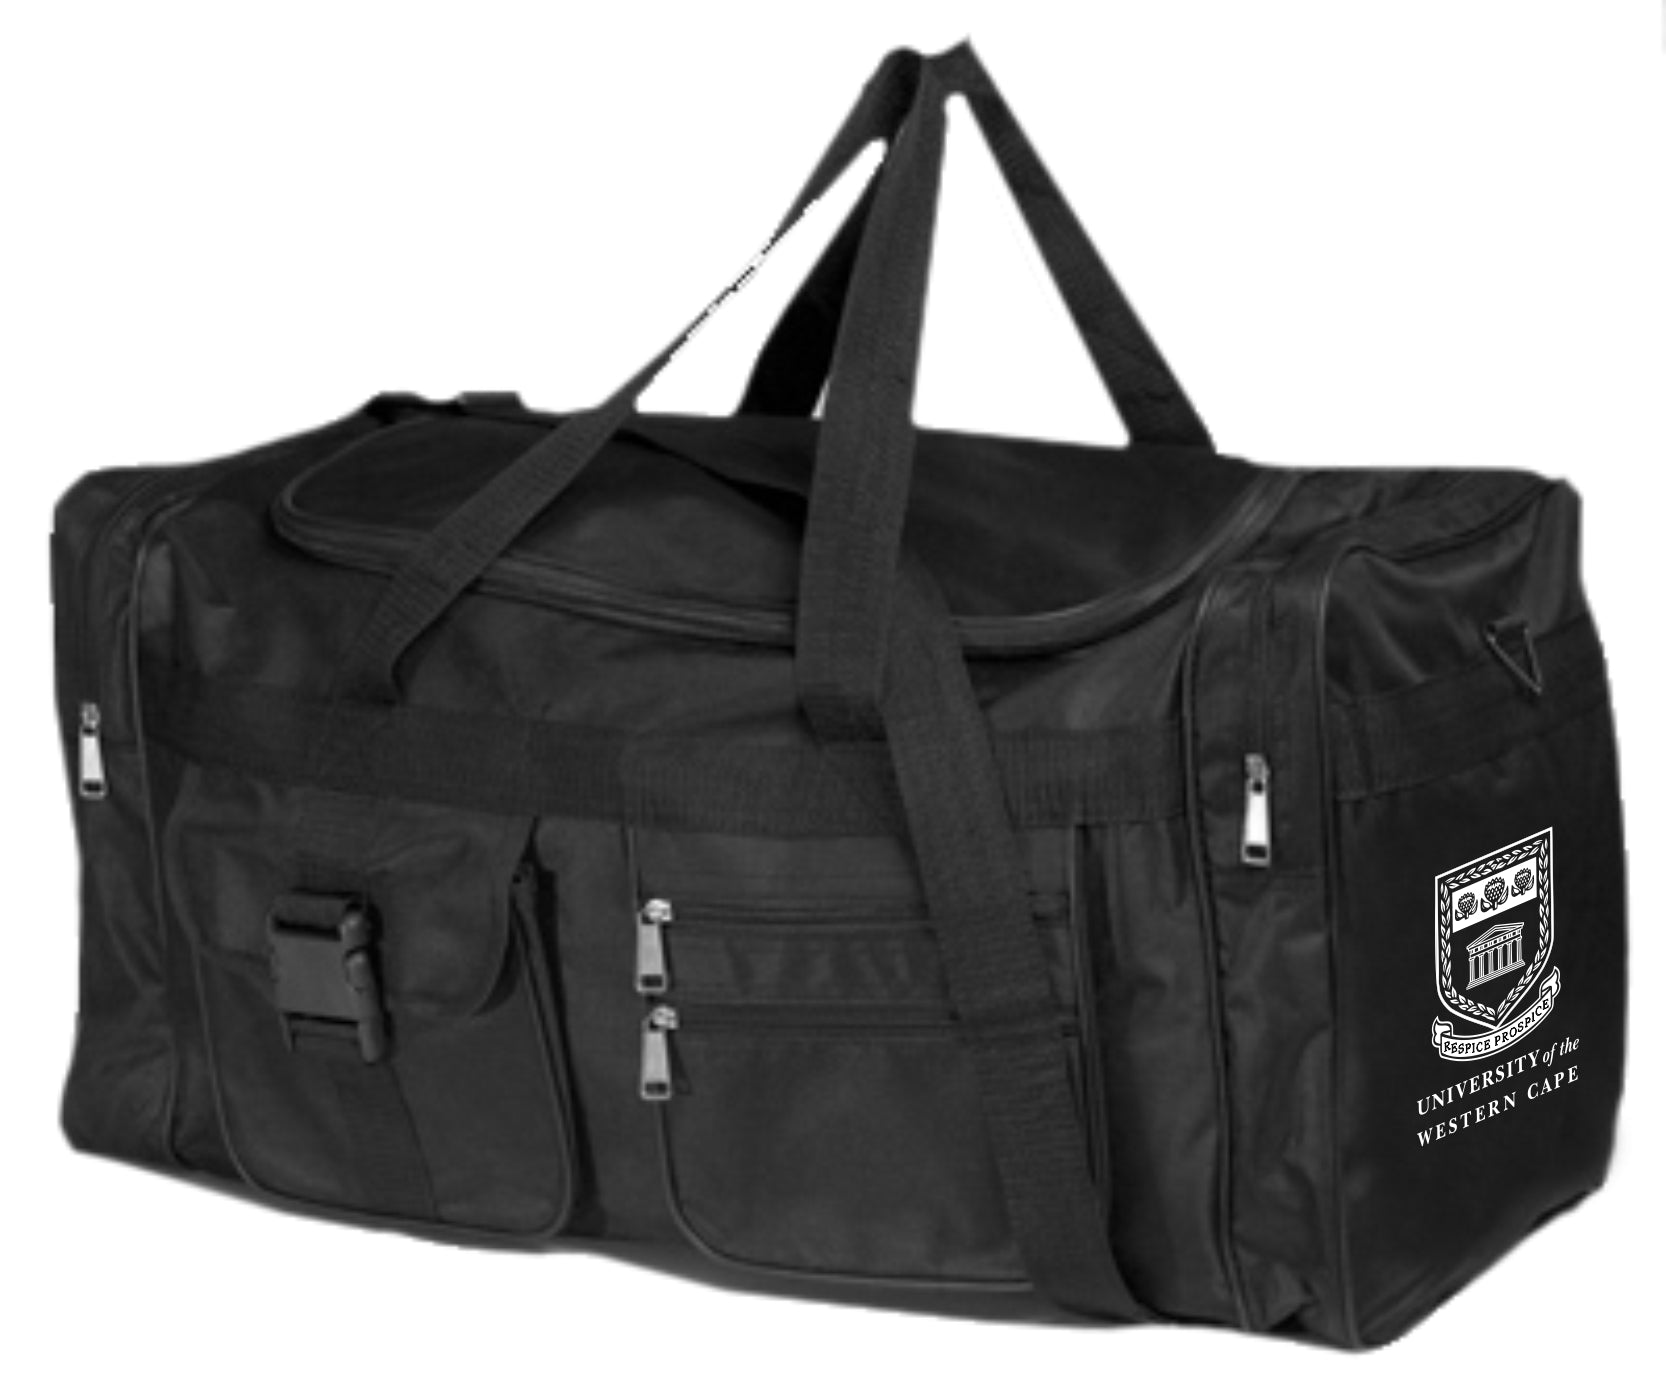 Sportec Travel Bag